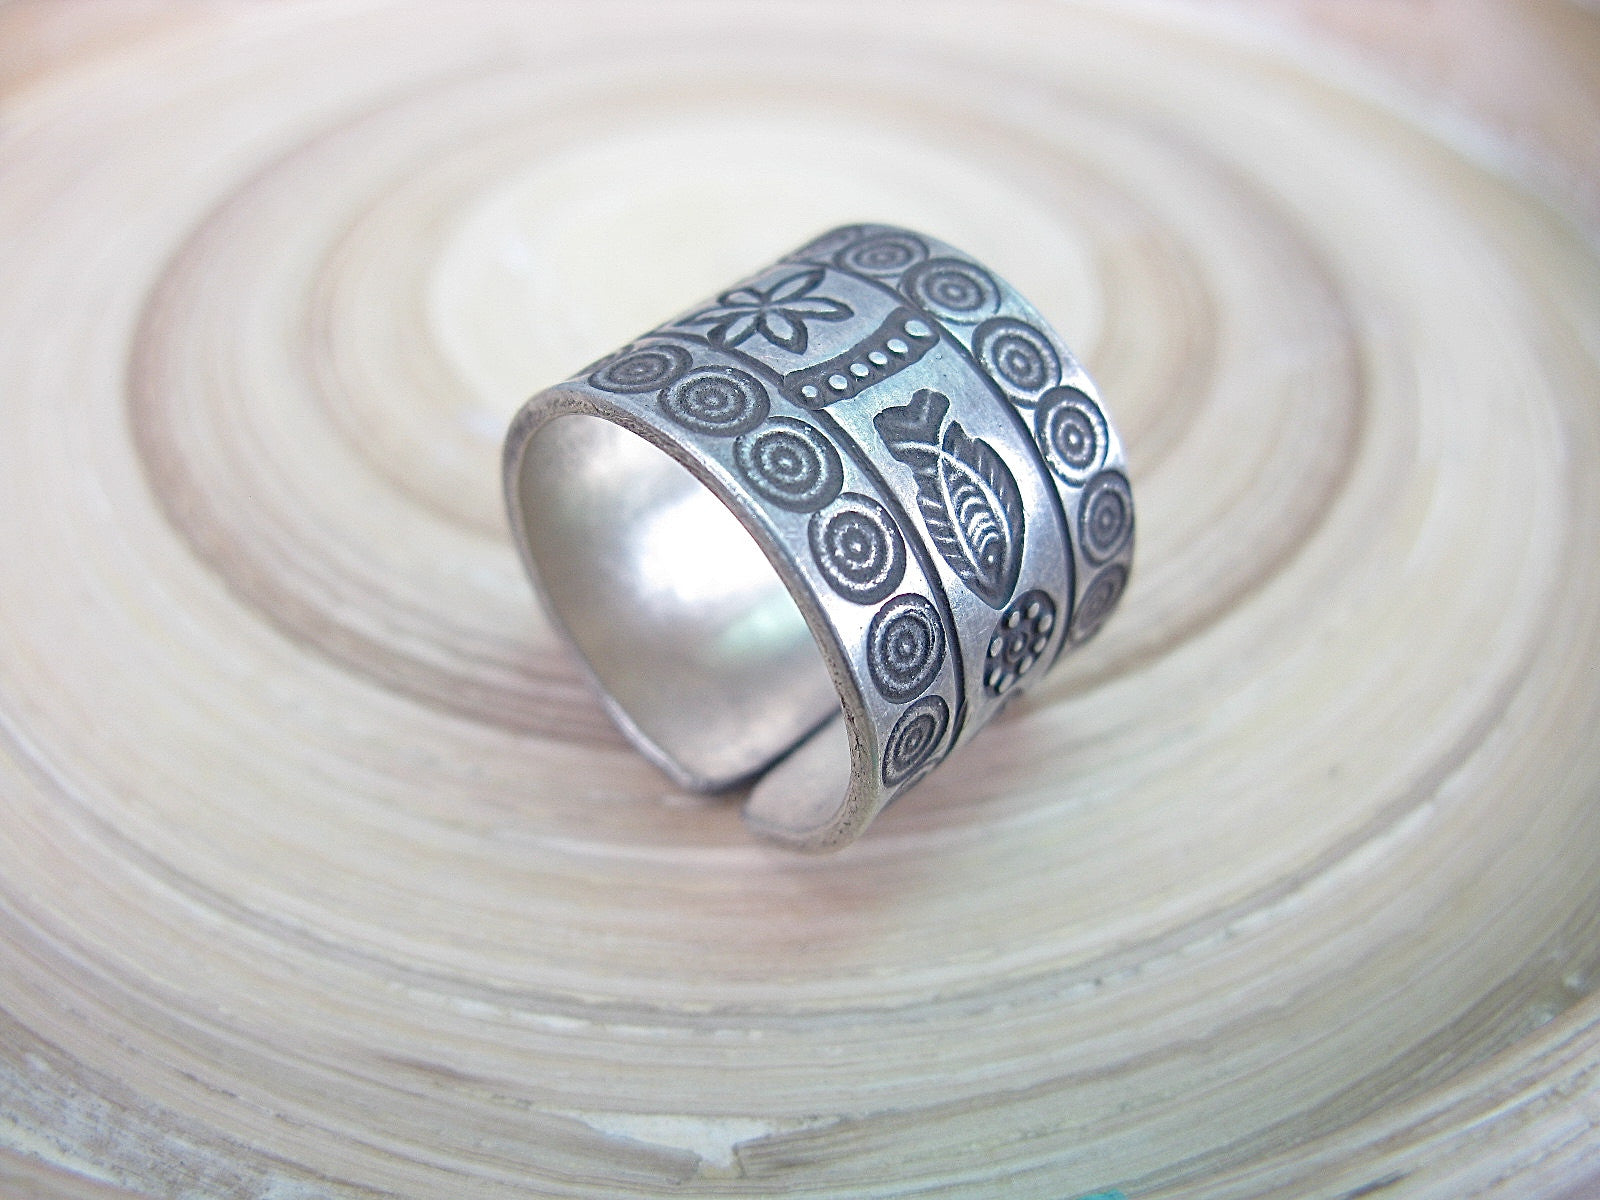 Engrave Fish Tribal Crafted Oxidized 925 Sterling Silver Ring Ring Faith Owl - Faith Owl